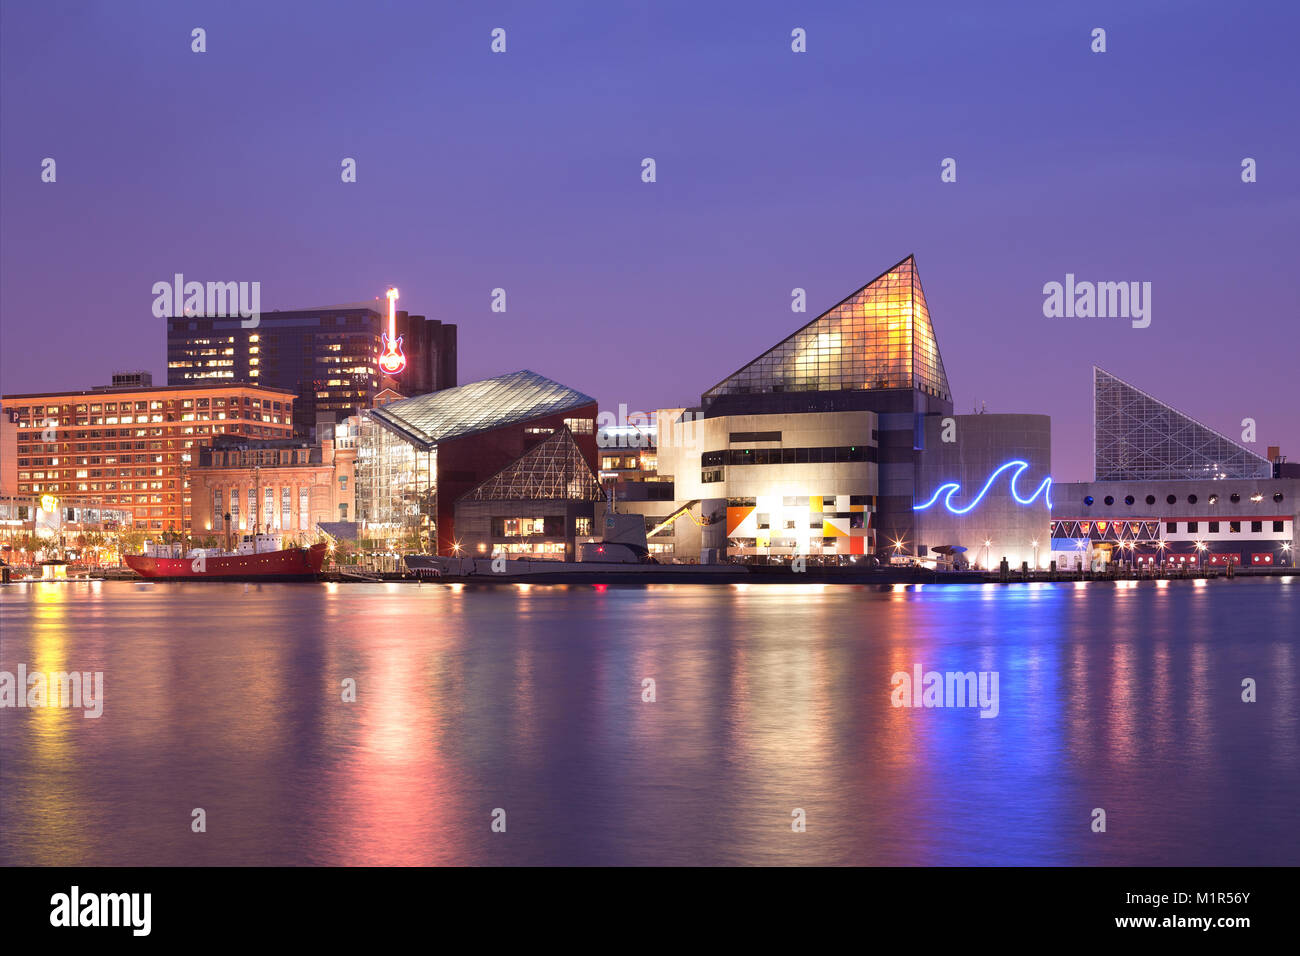 Baltimore, Maryland, USA - VIew at night of the National Aquarium at Inner Harbor. - Stock Image